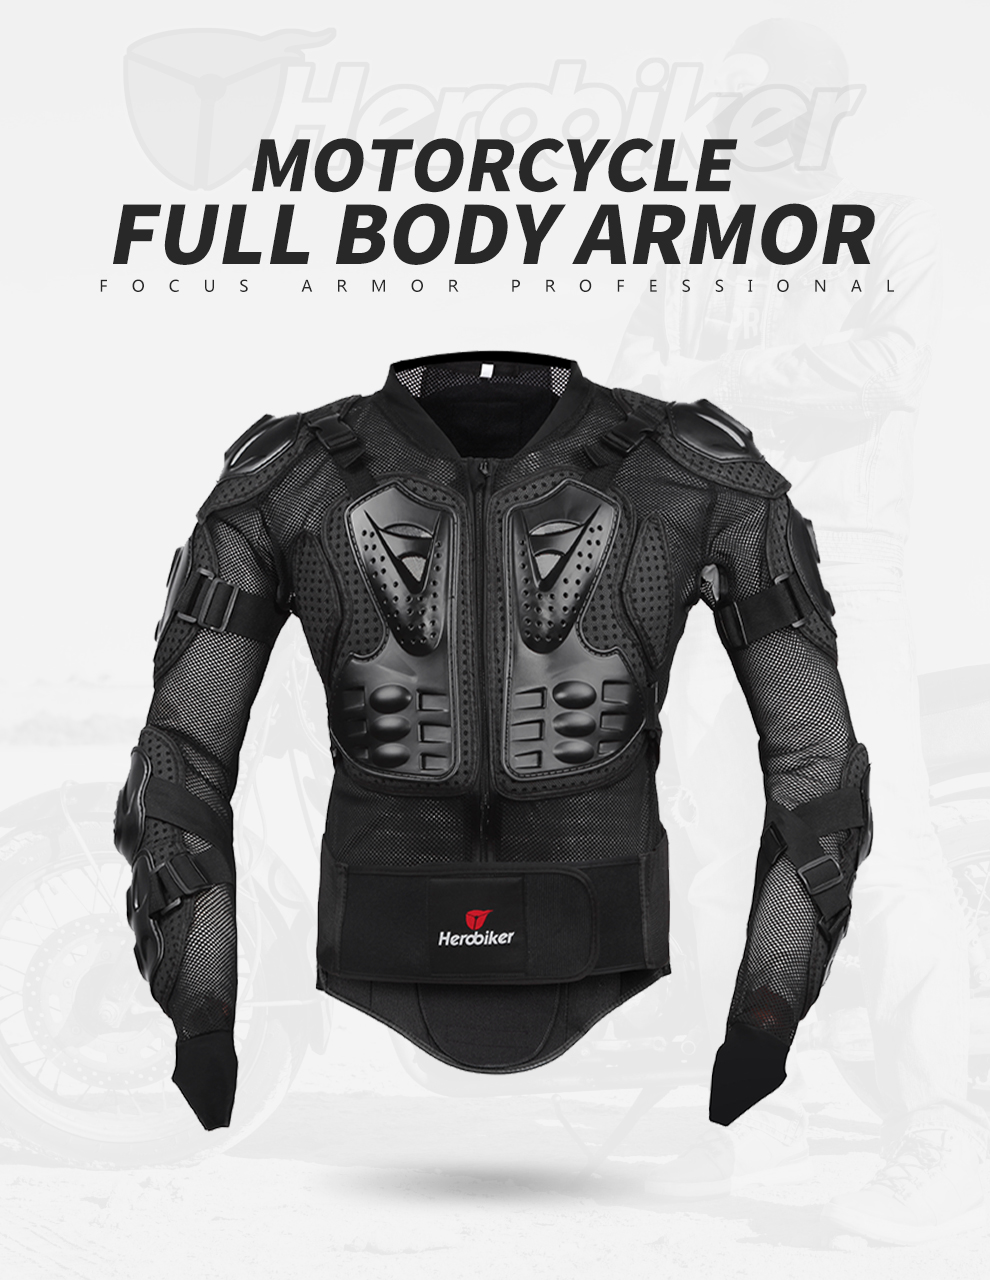 HEROBIKER Motorcycle Jacket Protective Gear Motocross Gear Armor Body Chest Motor Rider Racing Jacket Motorcycle Protection 7